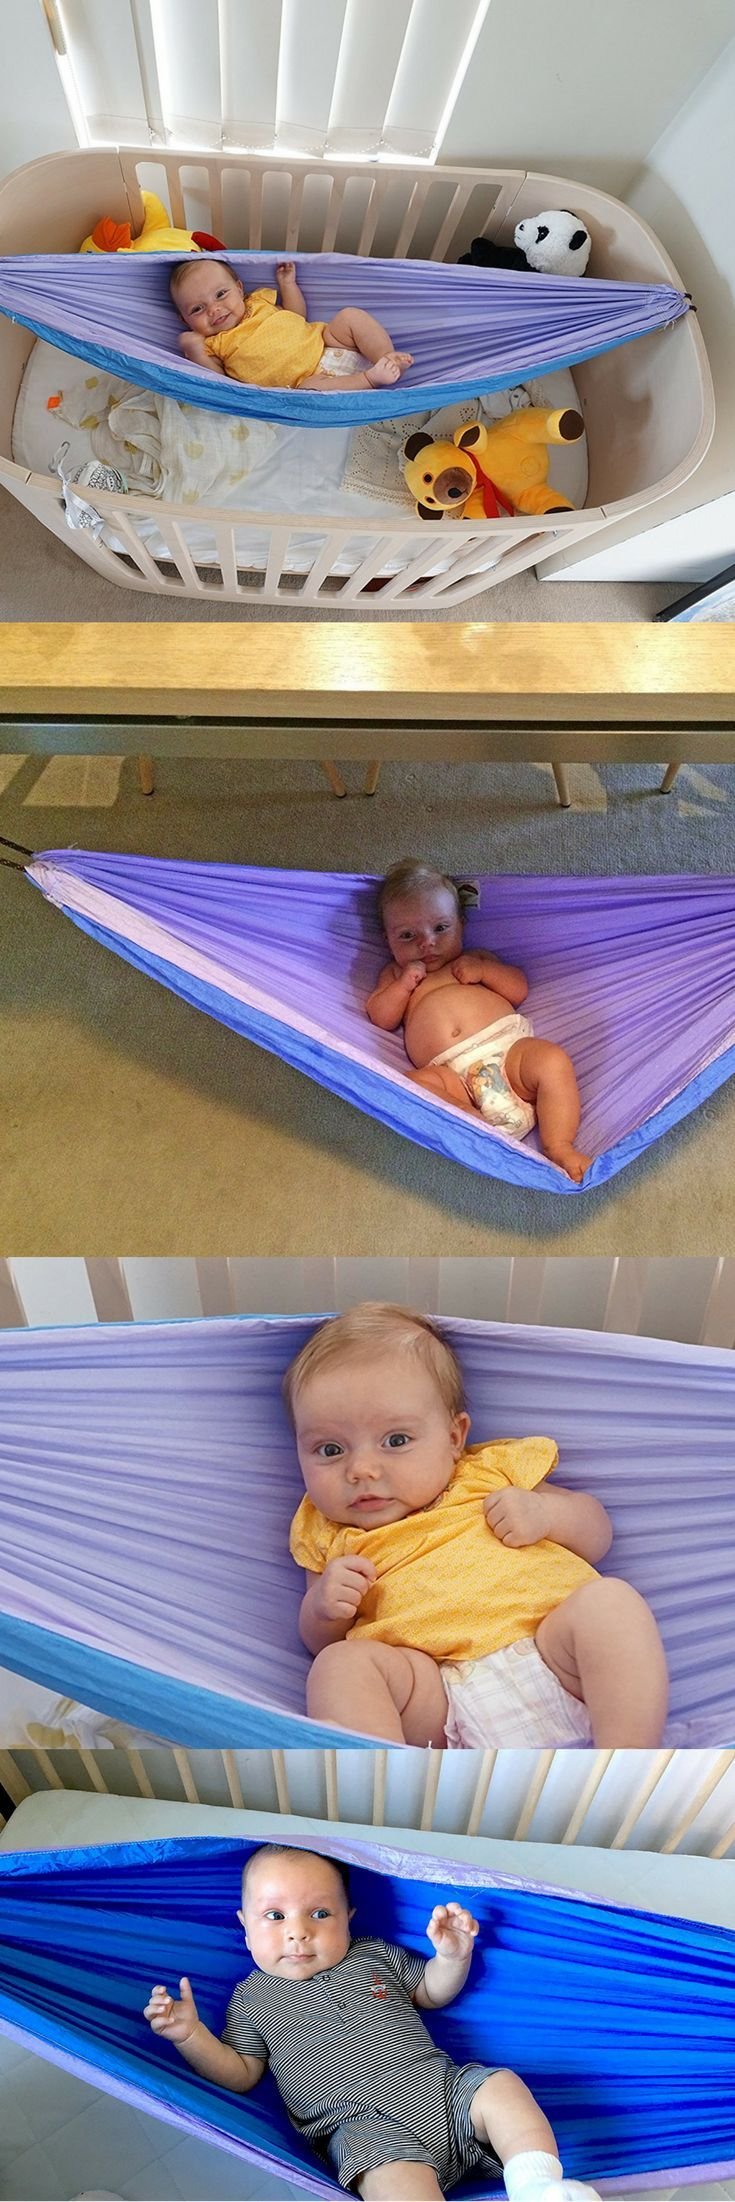 Baby crib hammock - The Traveling Baby Hammock Hold Up To 80 Pounds Great For When You Are